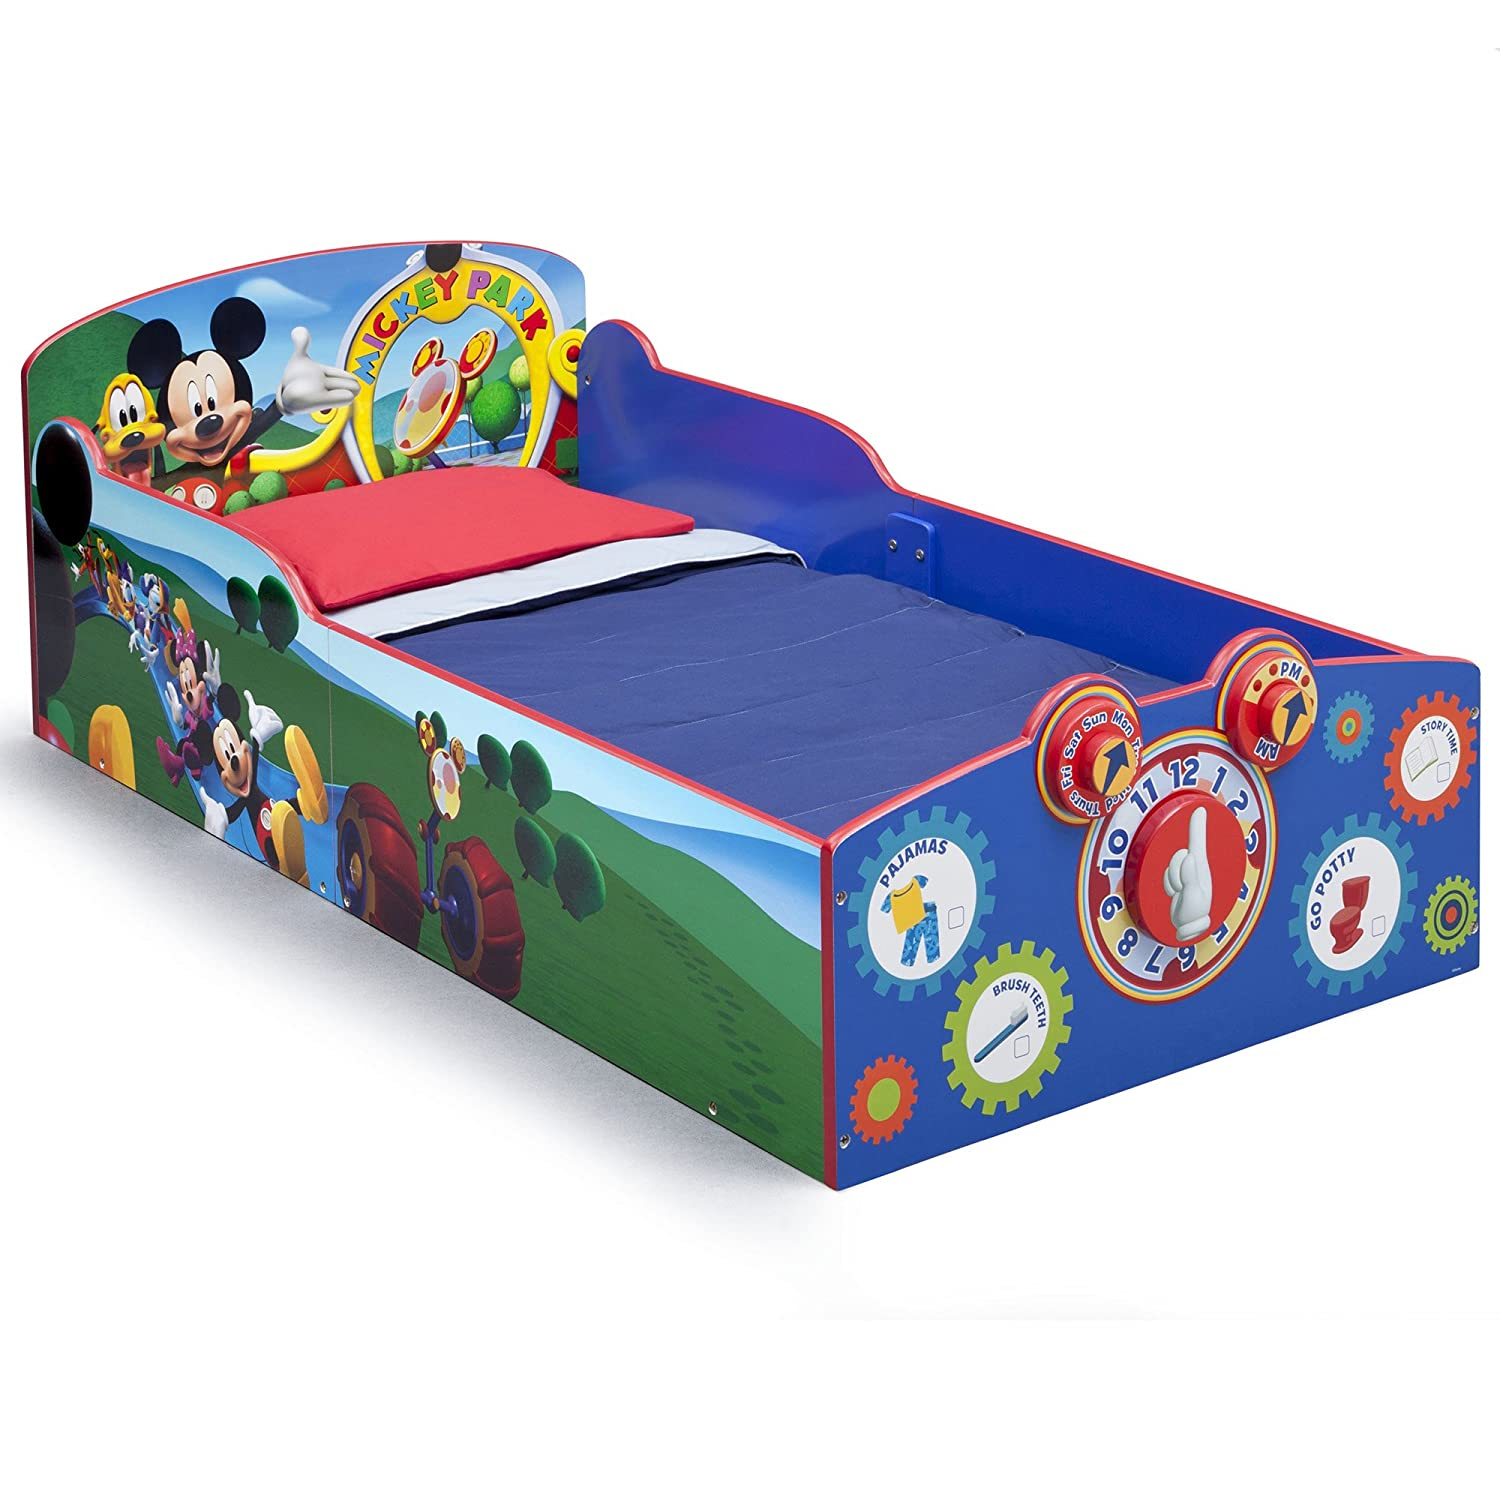 Delta Children Interactive Wood Toddler Bed, Disney Minnie Mouse with Twinkle Stars Crib & Toddler Mattress